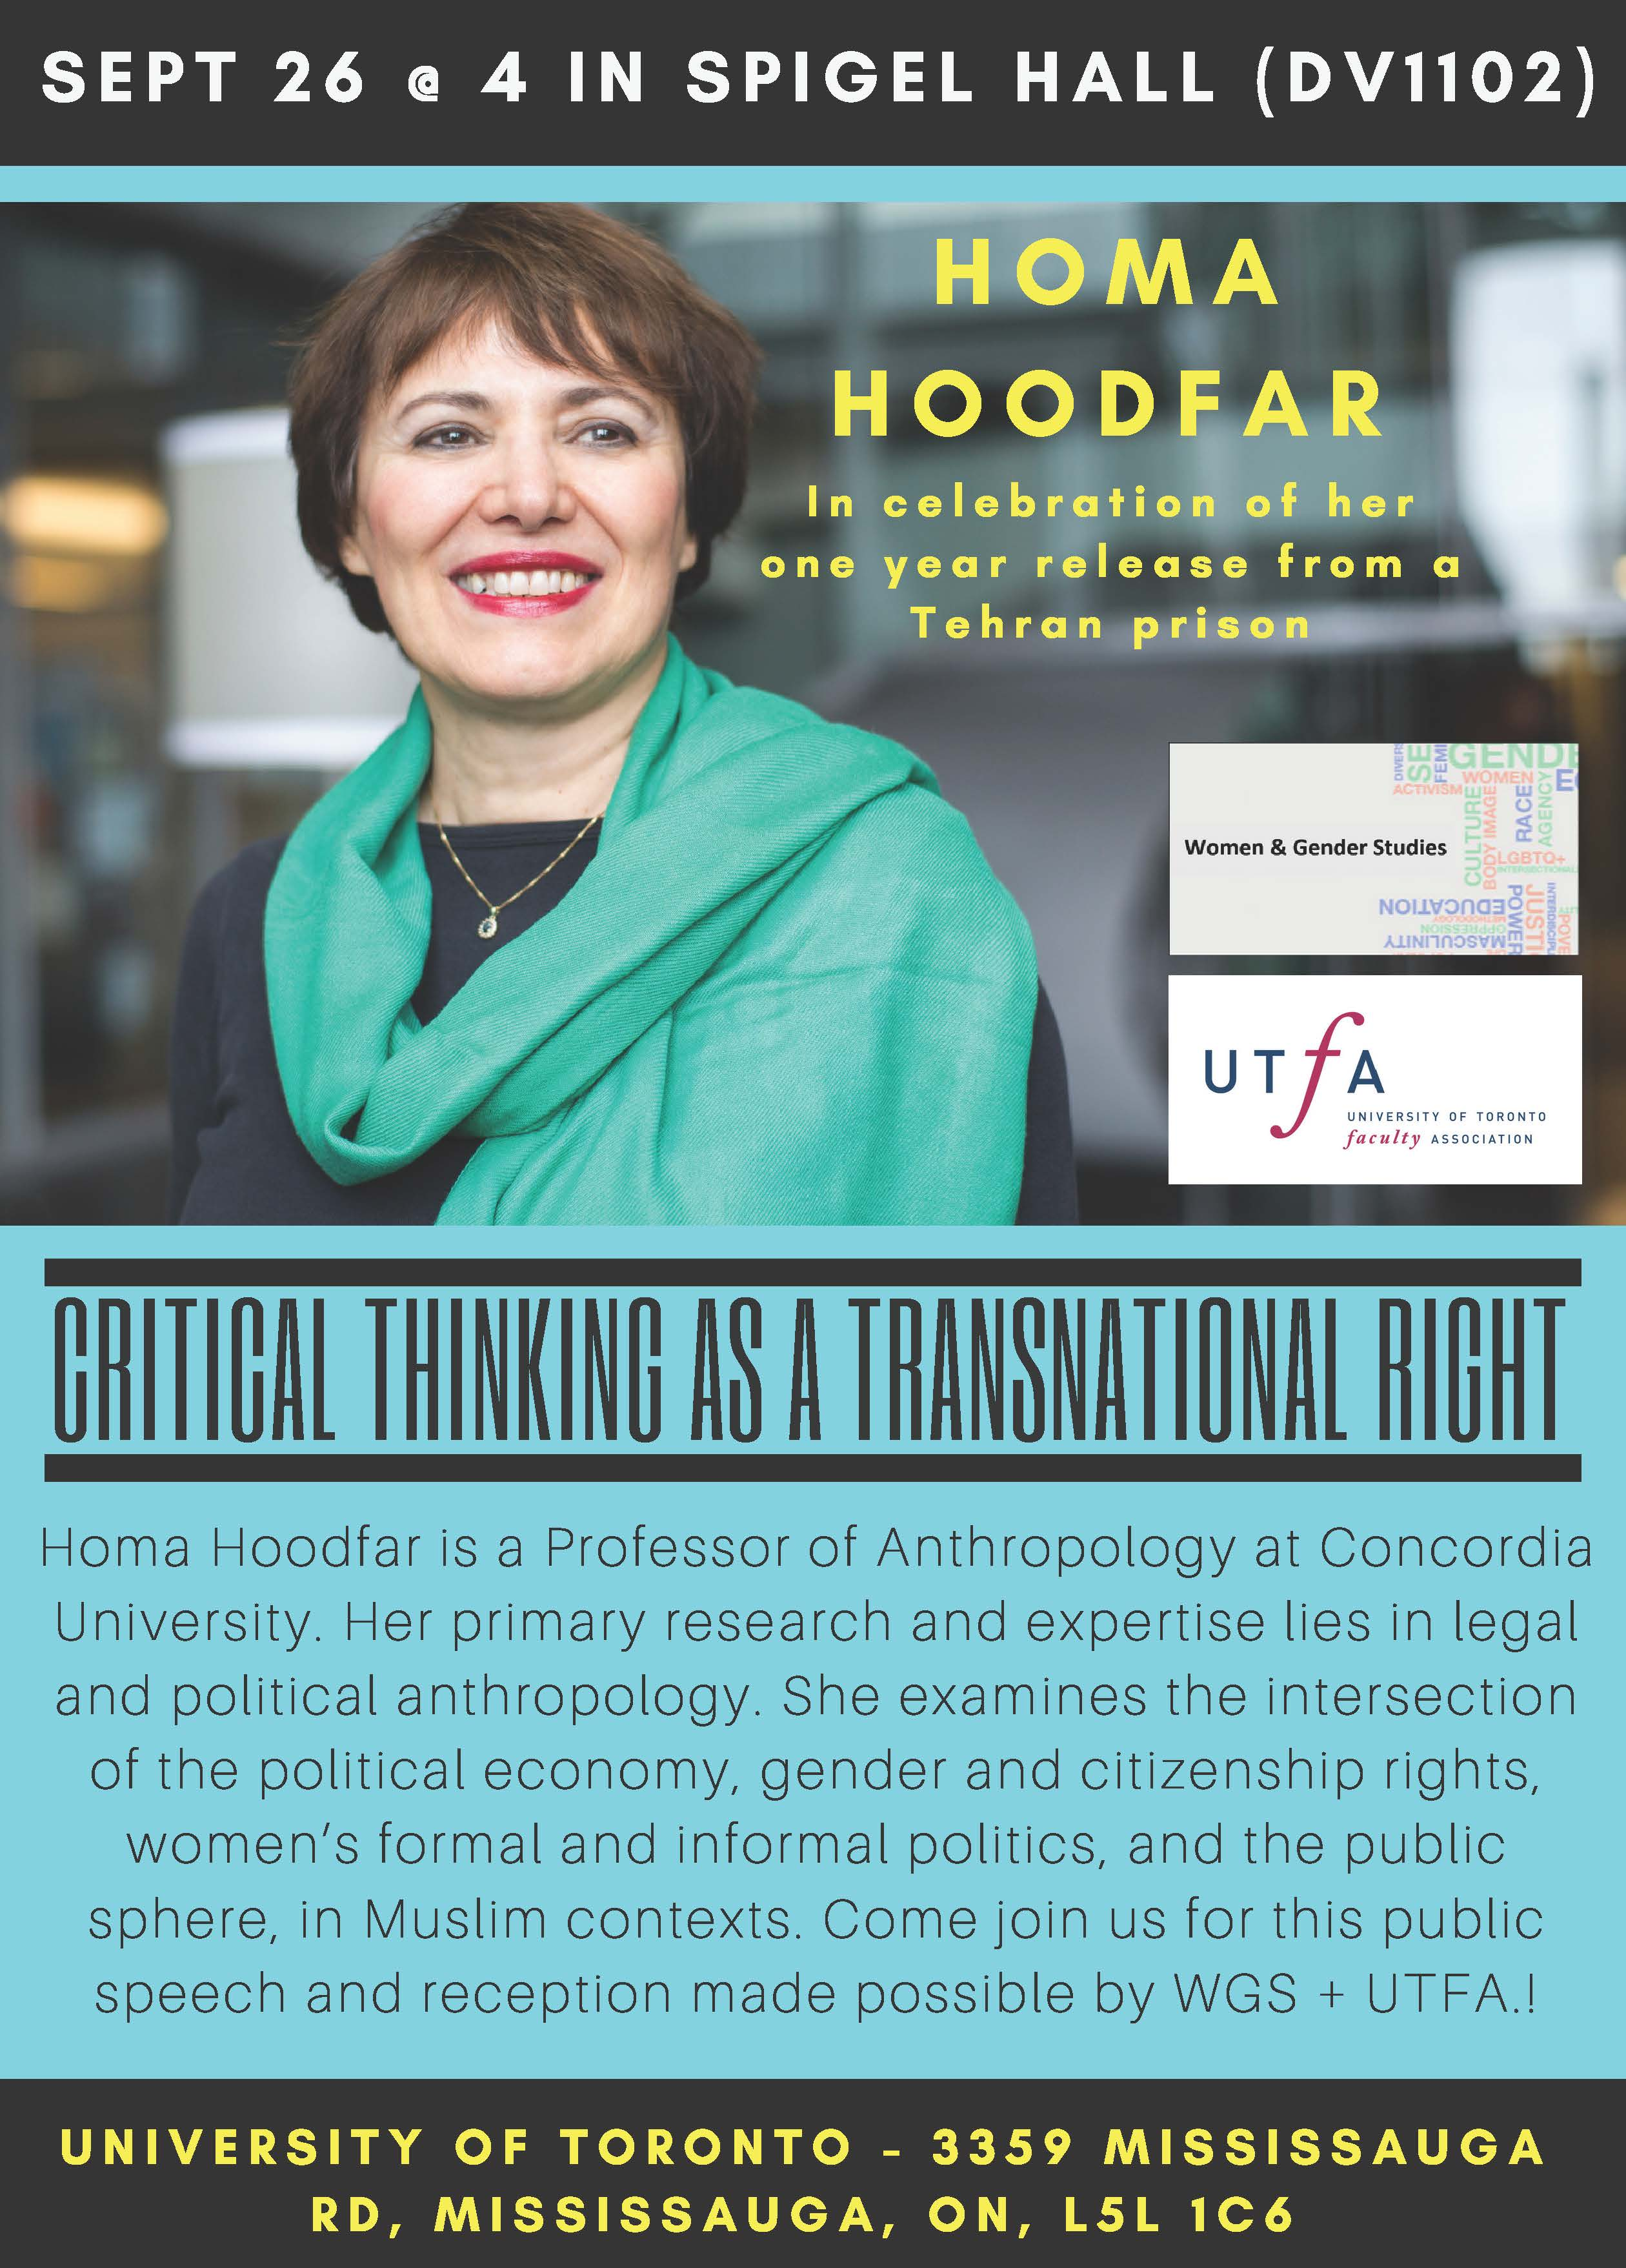 Photo of Event Poster for Homa Hoodfar public talk on September 26th at 4pm in Spigel Hall